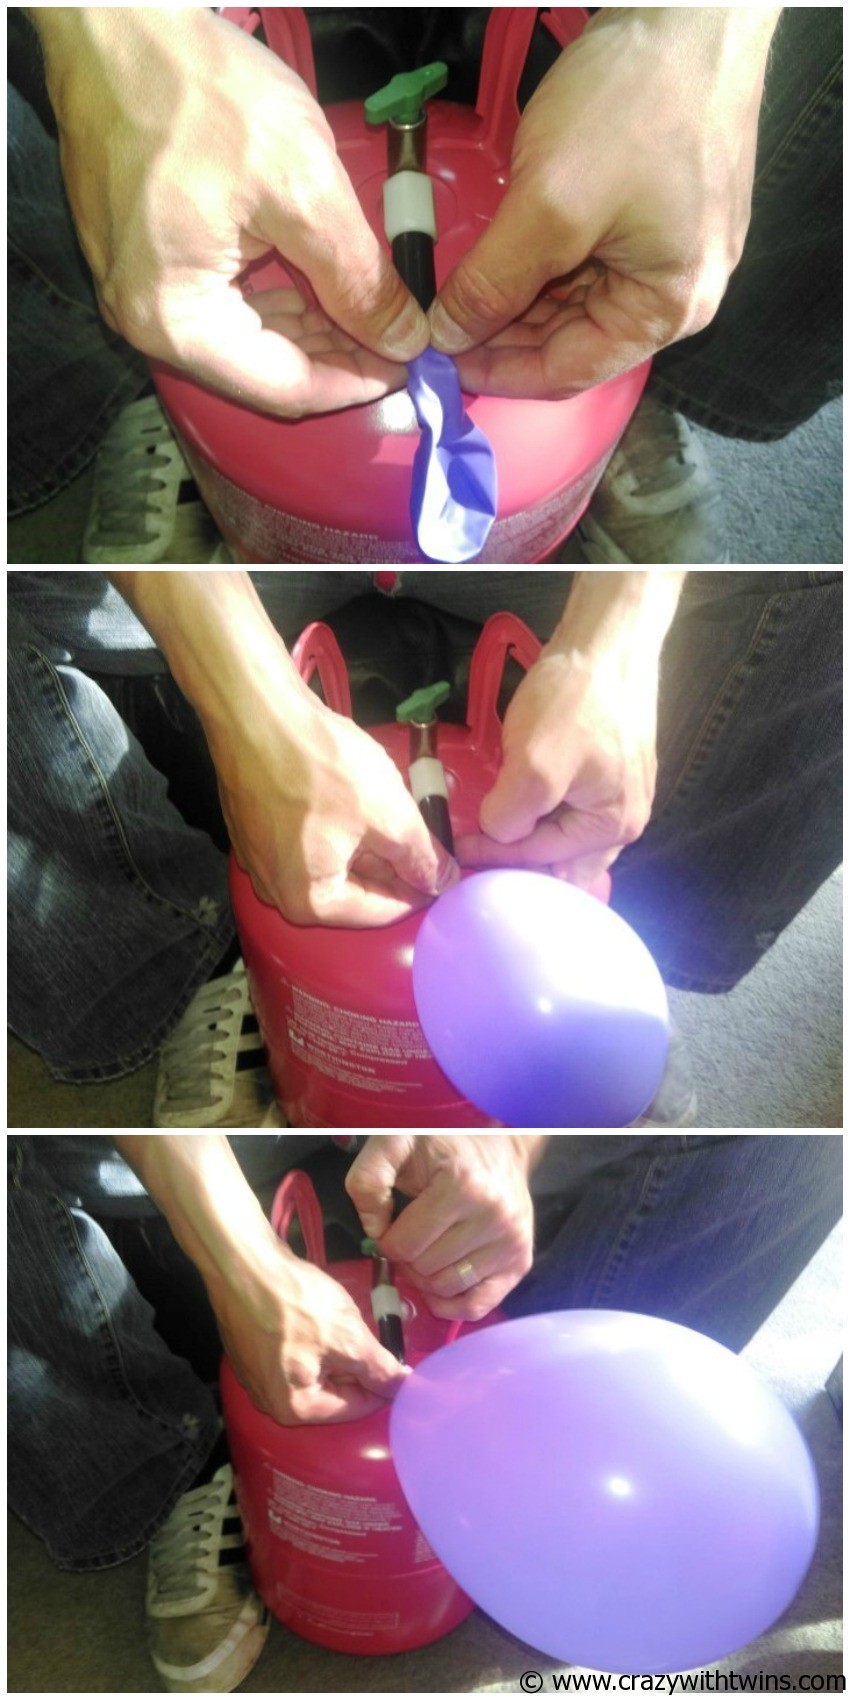 How to use a Balloon Time kit